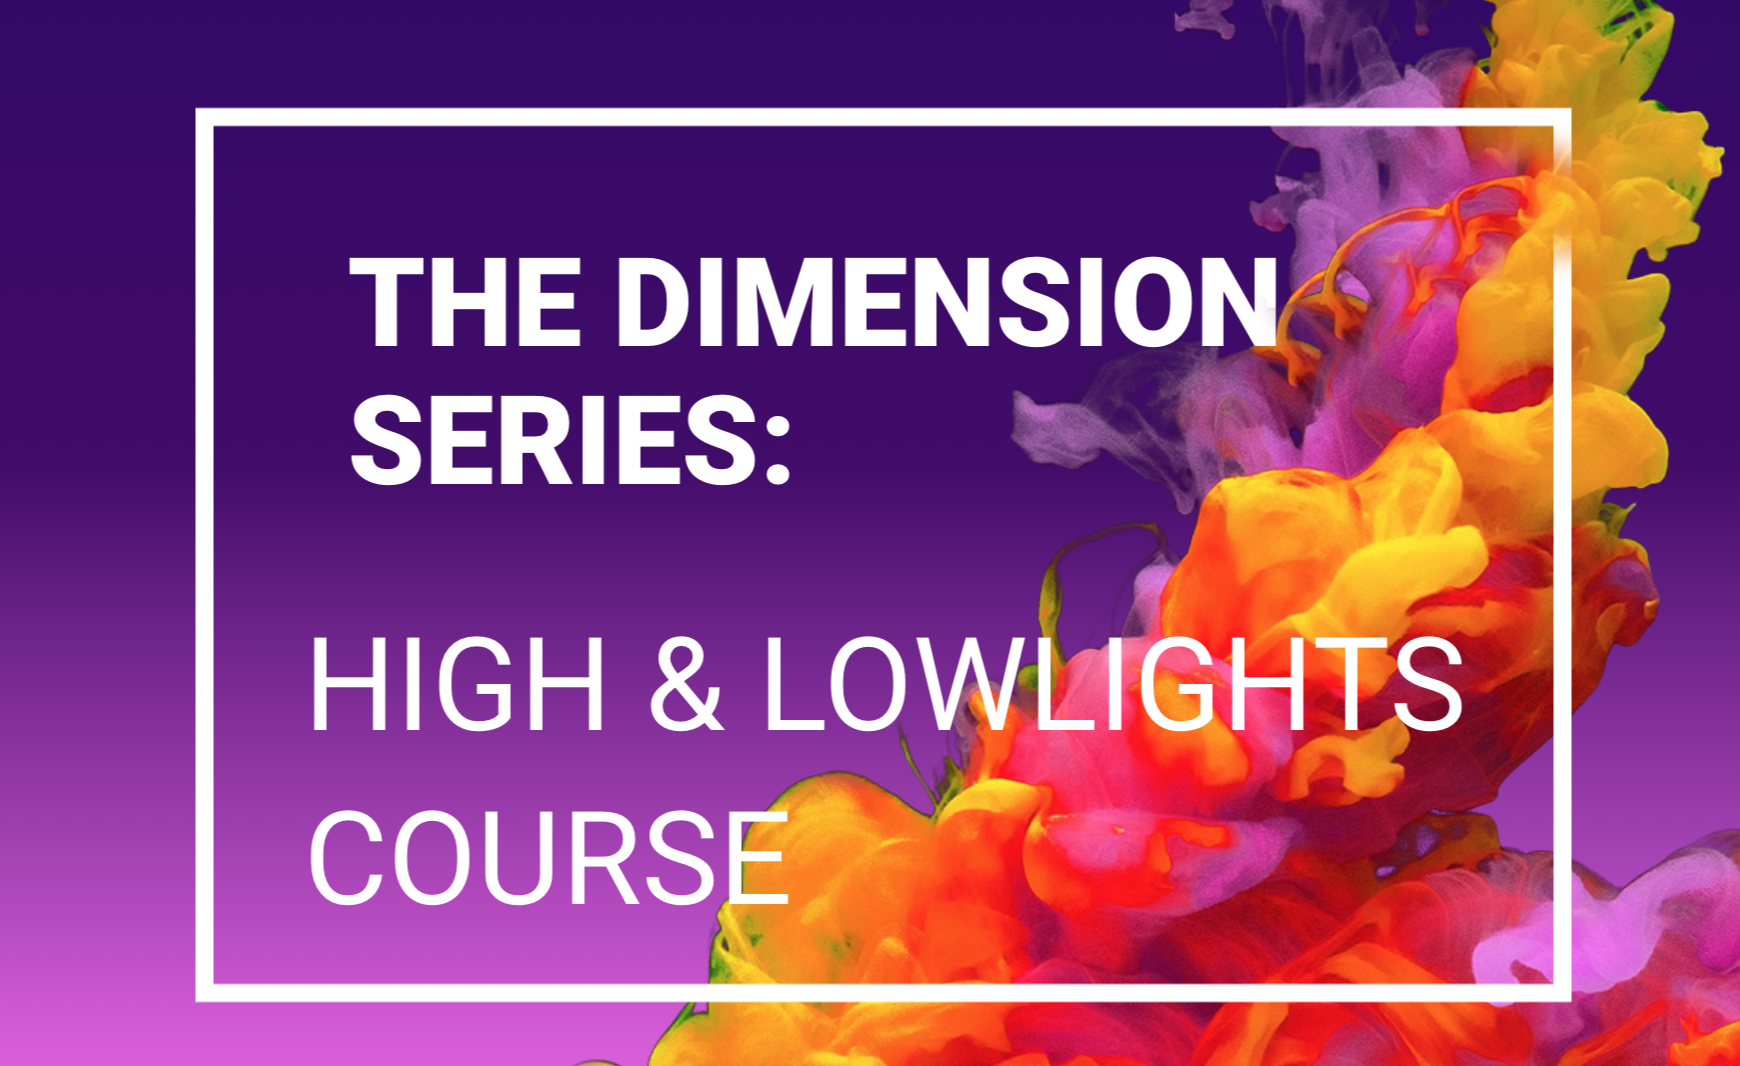 High & Lowlights online course. Feb 28th 2020.